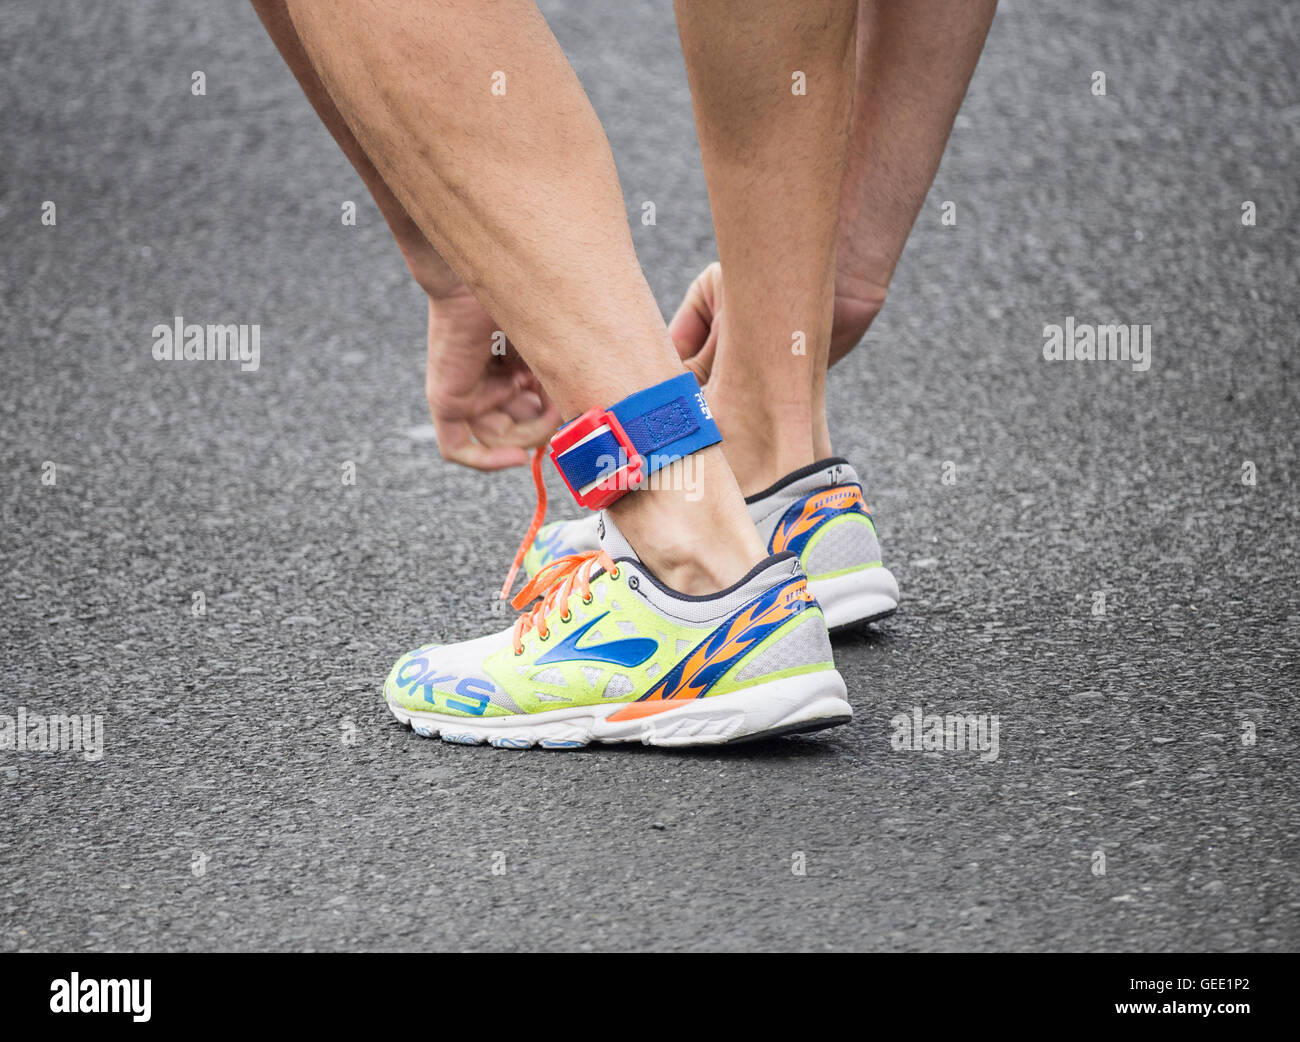 Triathlete wearing timing chip/tag on ankle. - Stock Image